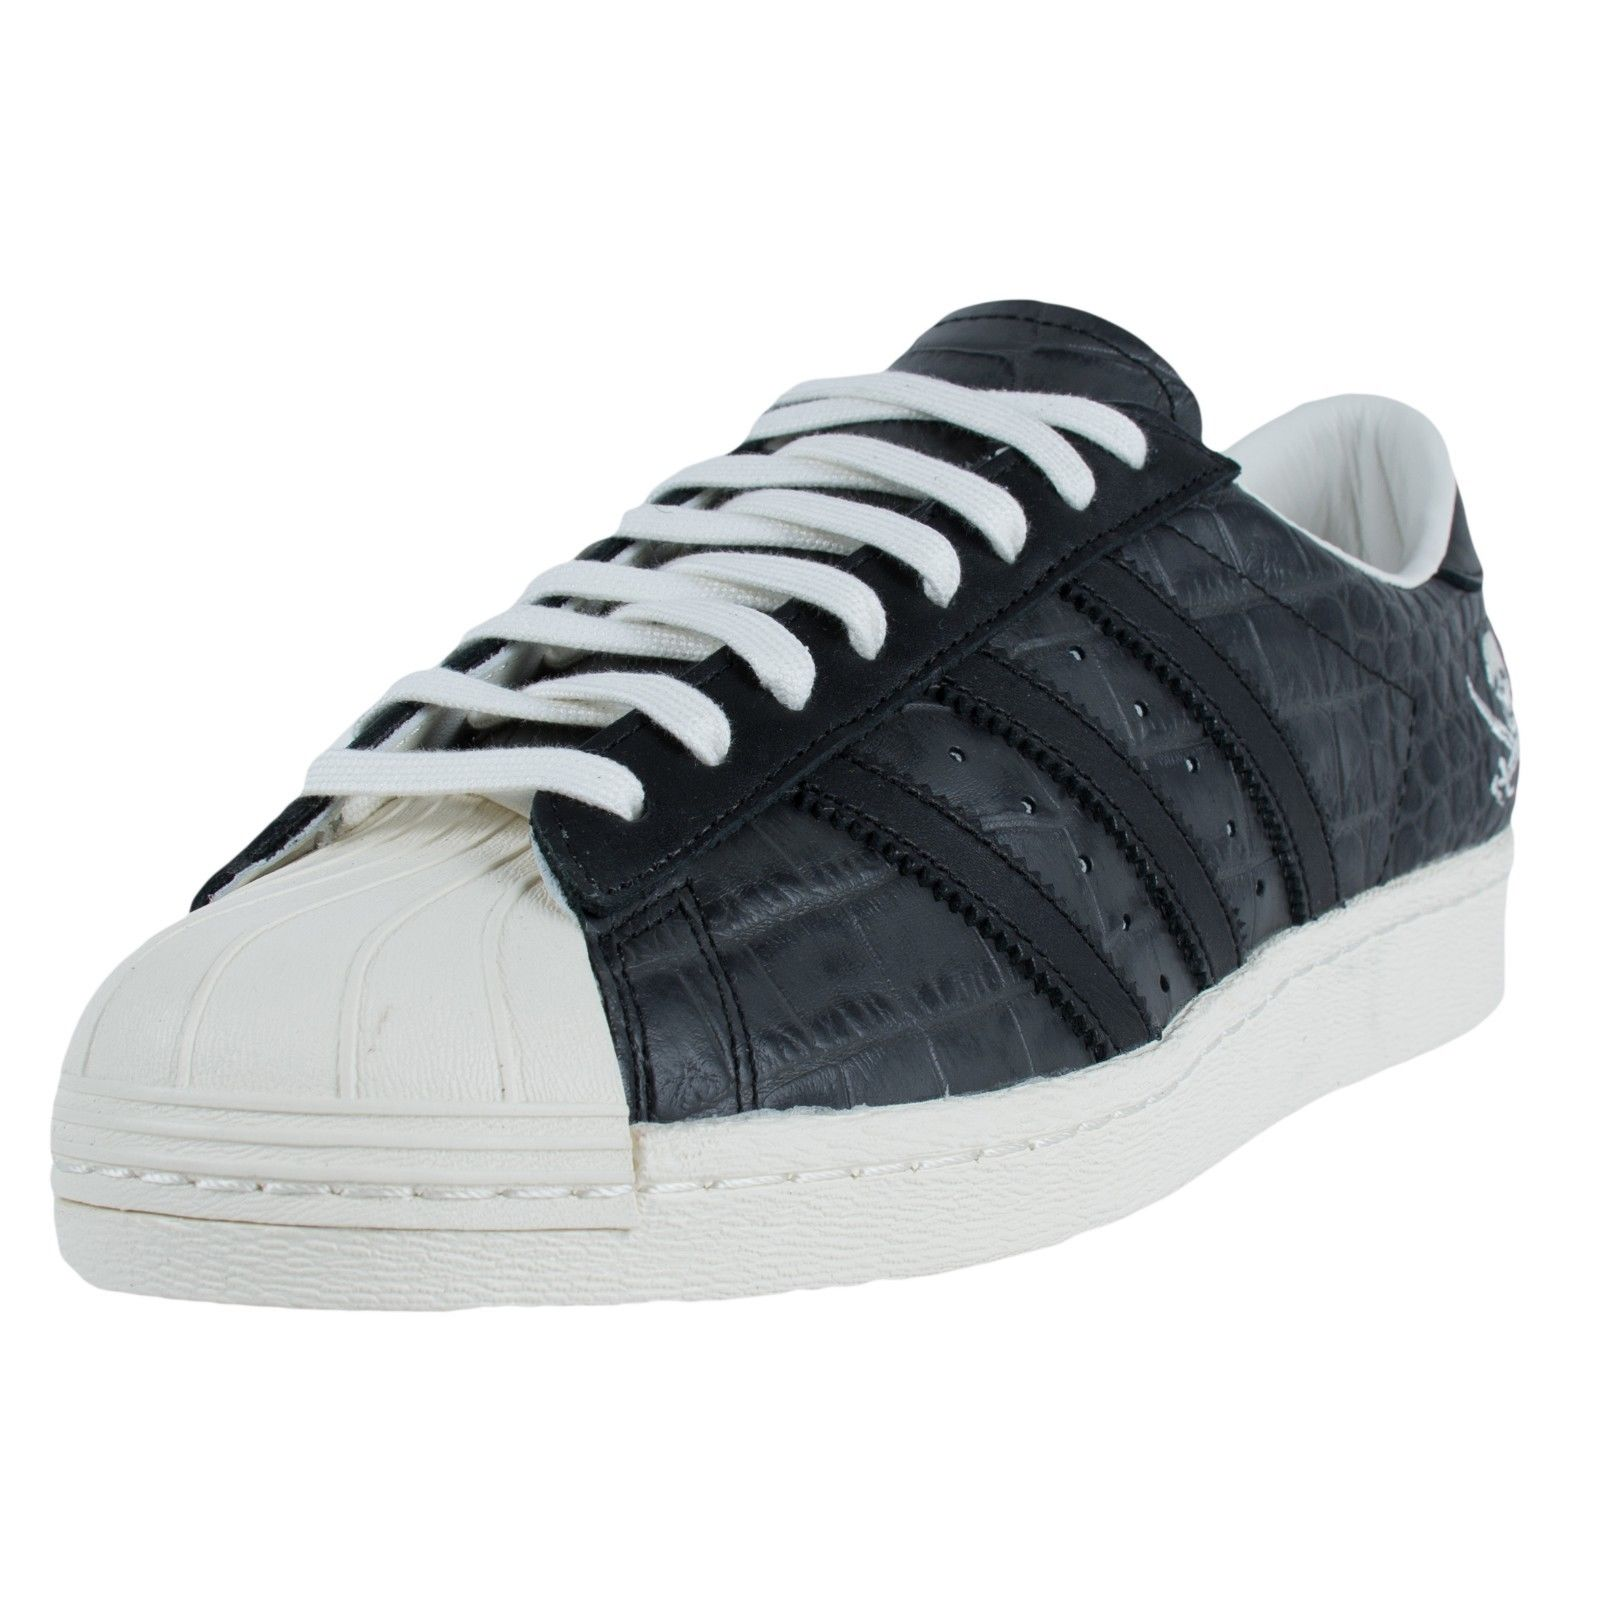 adidas consortium x neighborhood superstar 80v